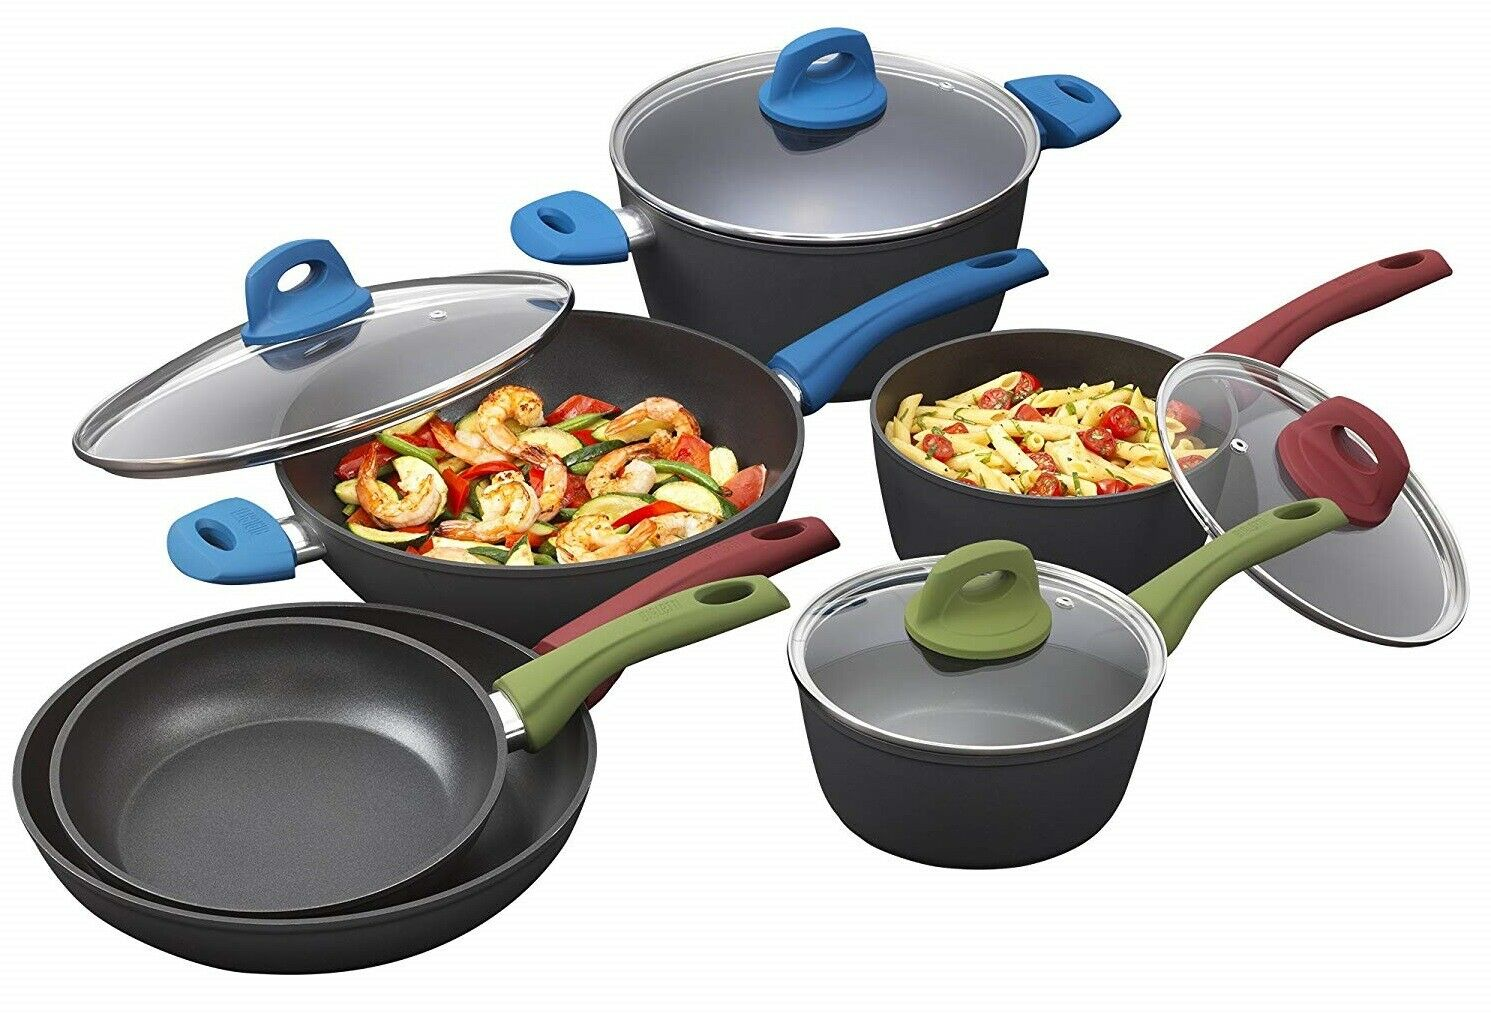 Bialetti Simply italien - 10-Piece Cookware Set MultiCouleure 07448 NEUF